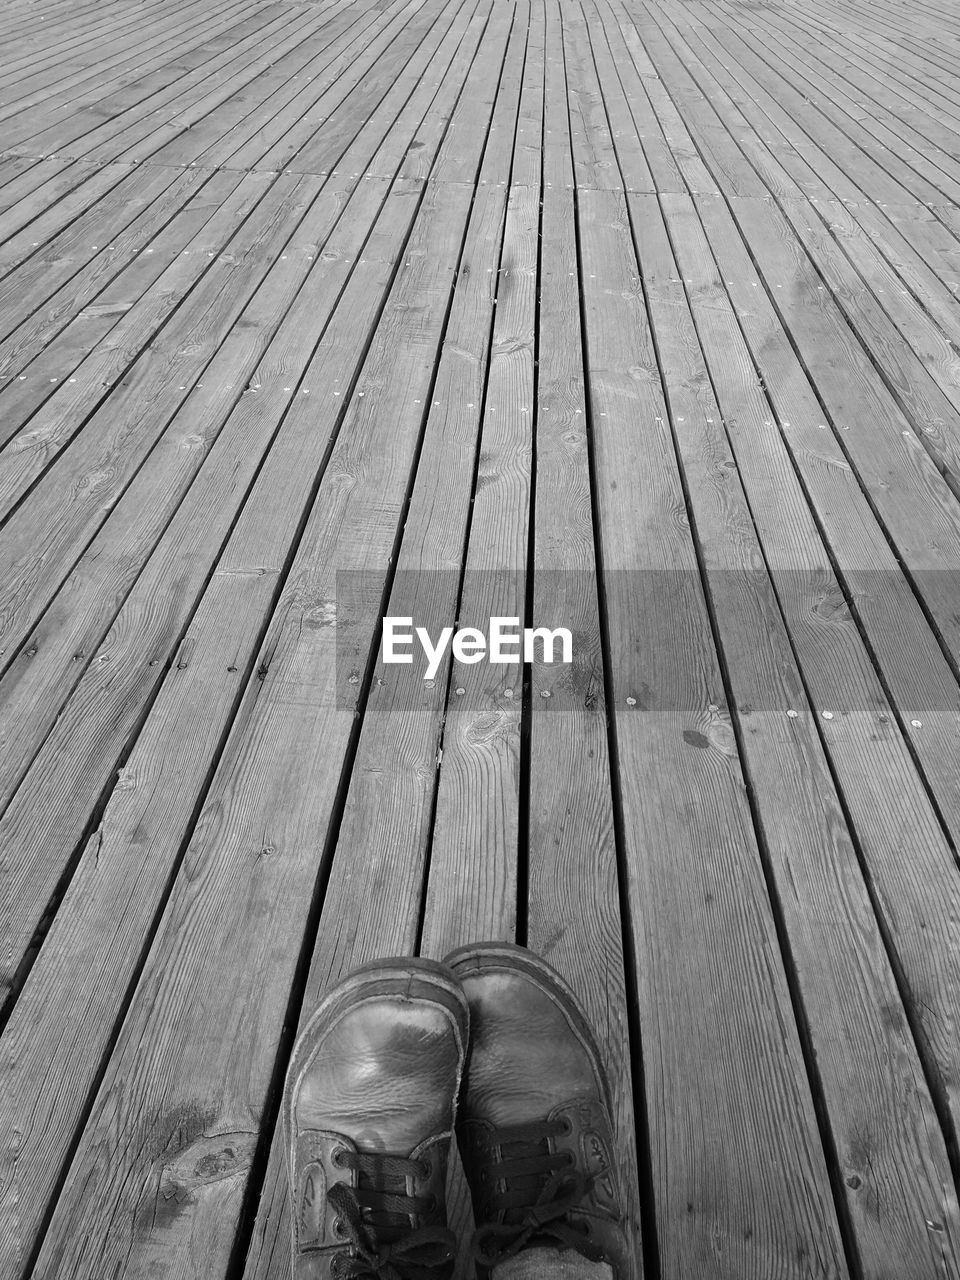 Low Section Of Person On Wooden Planks